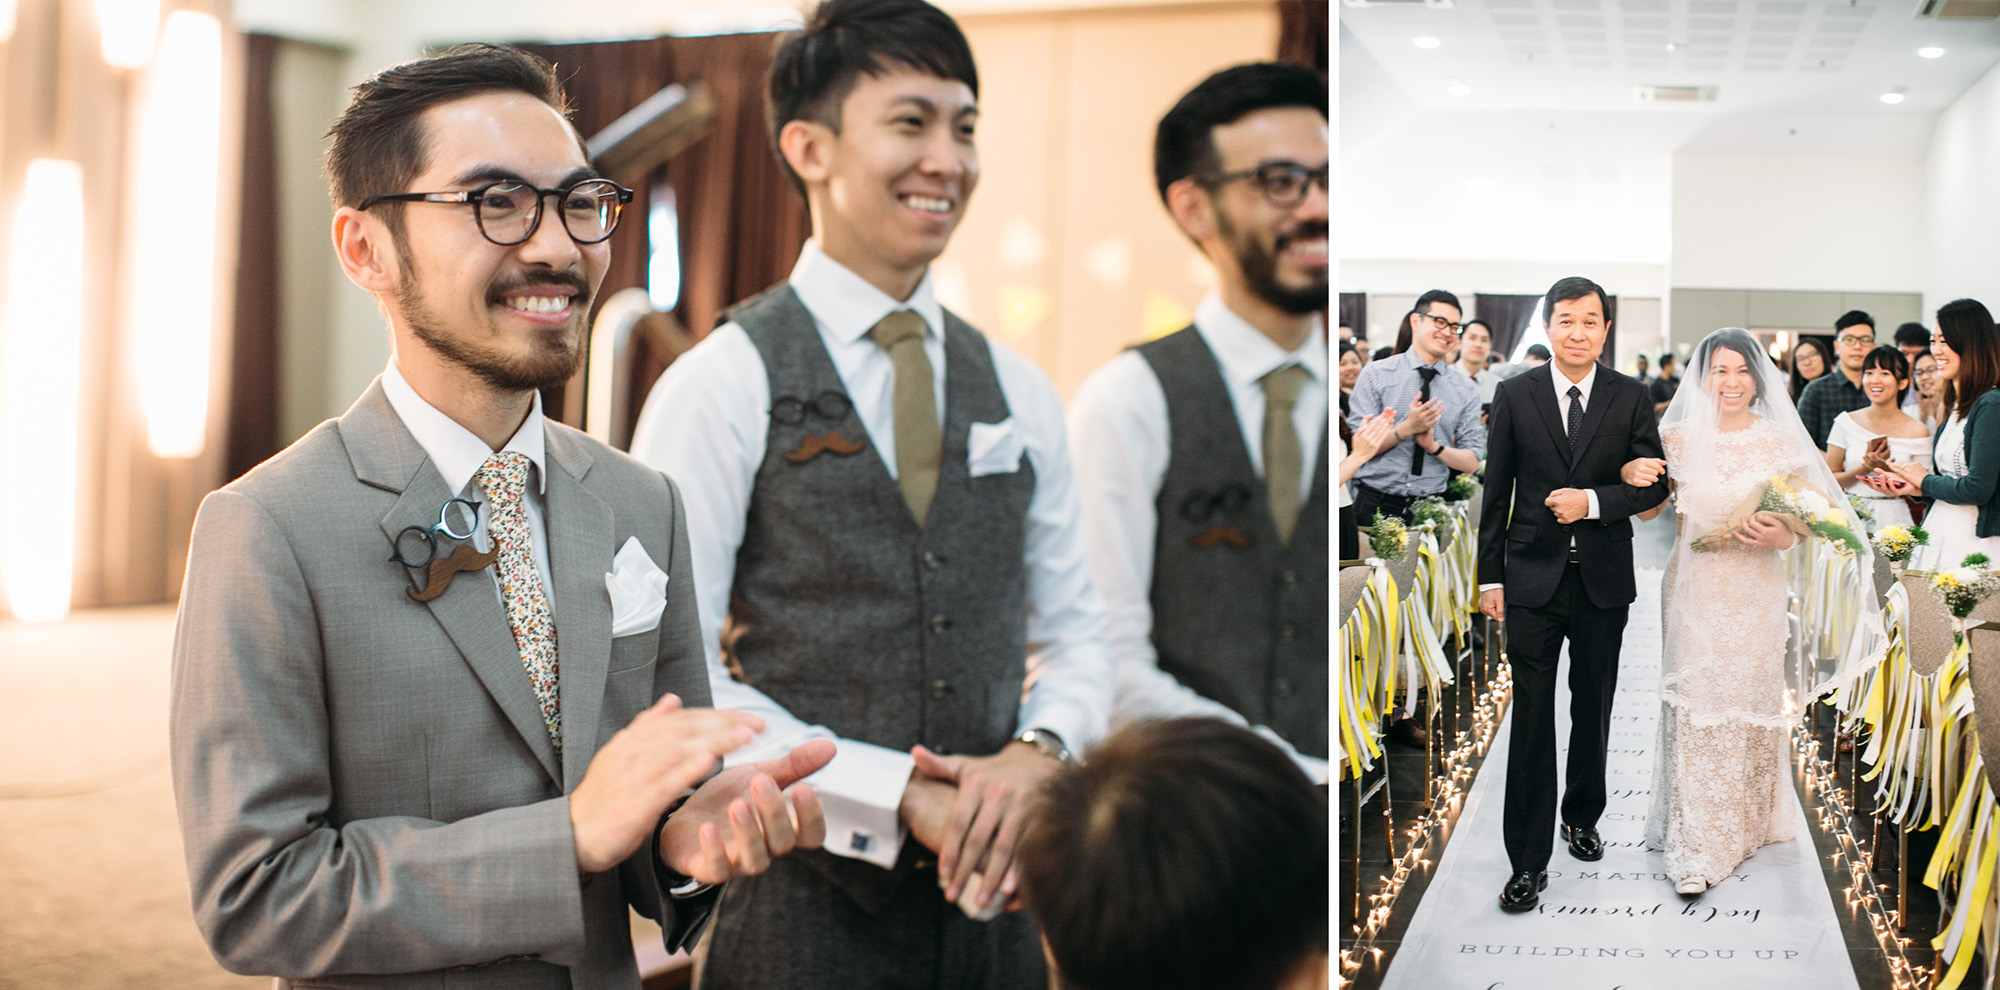 47-hellojanelee-sam grace-malaysia-wedding-day